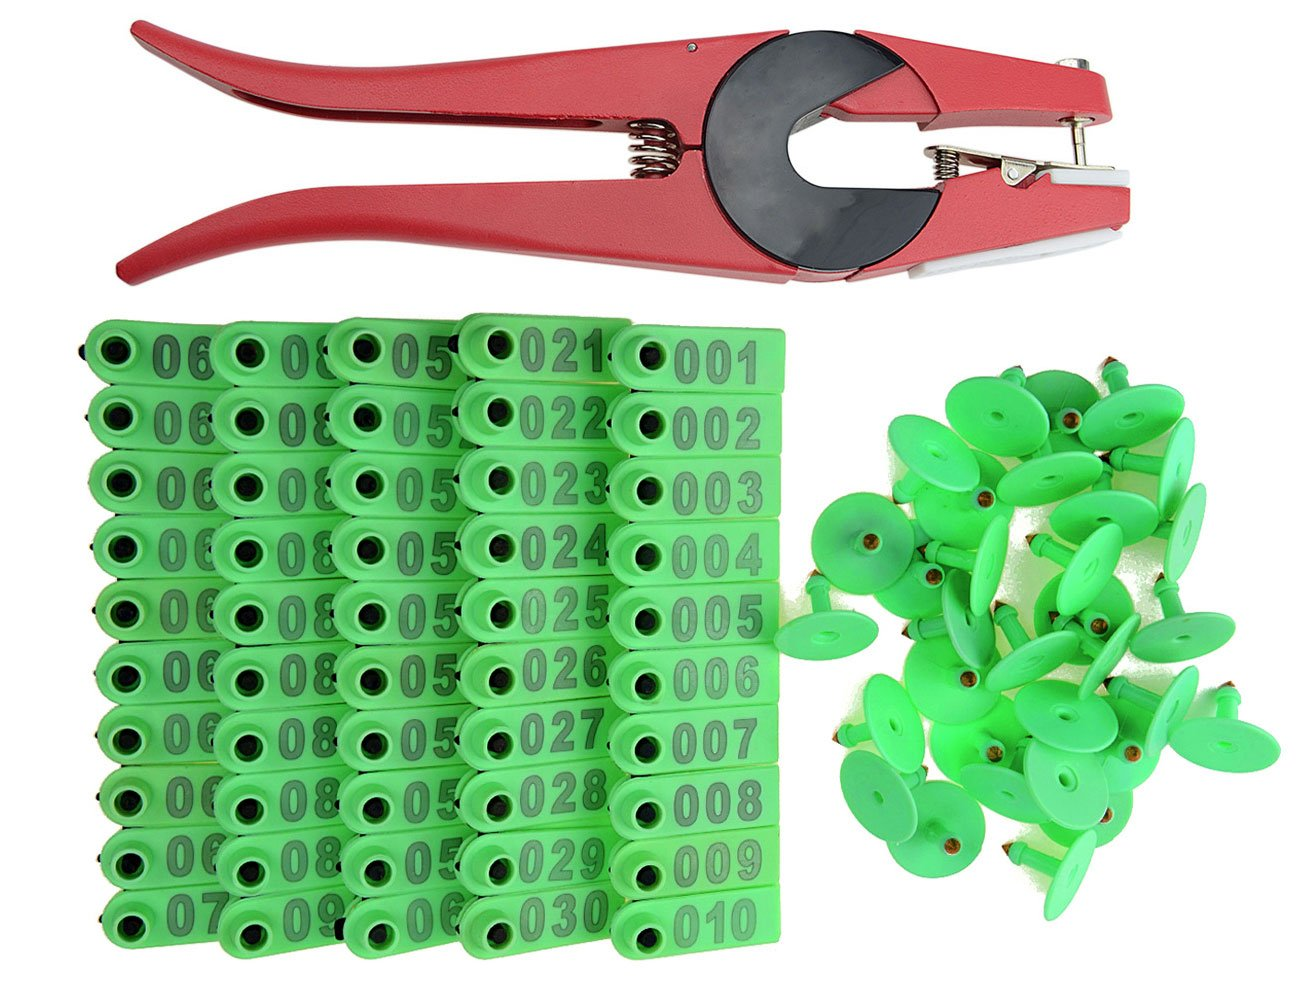 WGCD WMYCONGCONG 1-100 Number Plastic Livestock Ear Tag Animal Tag Green and 1 Pcs Ear Tag Applicator for Goat Sheep (Green) by WGCD